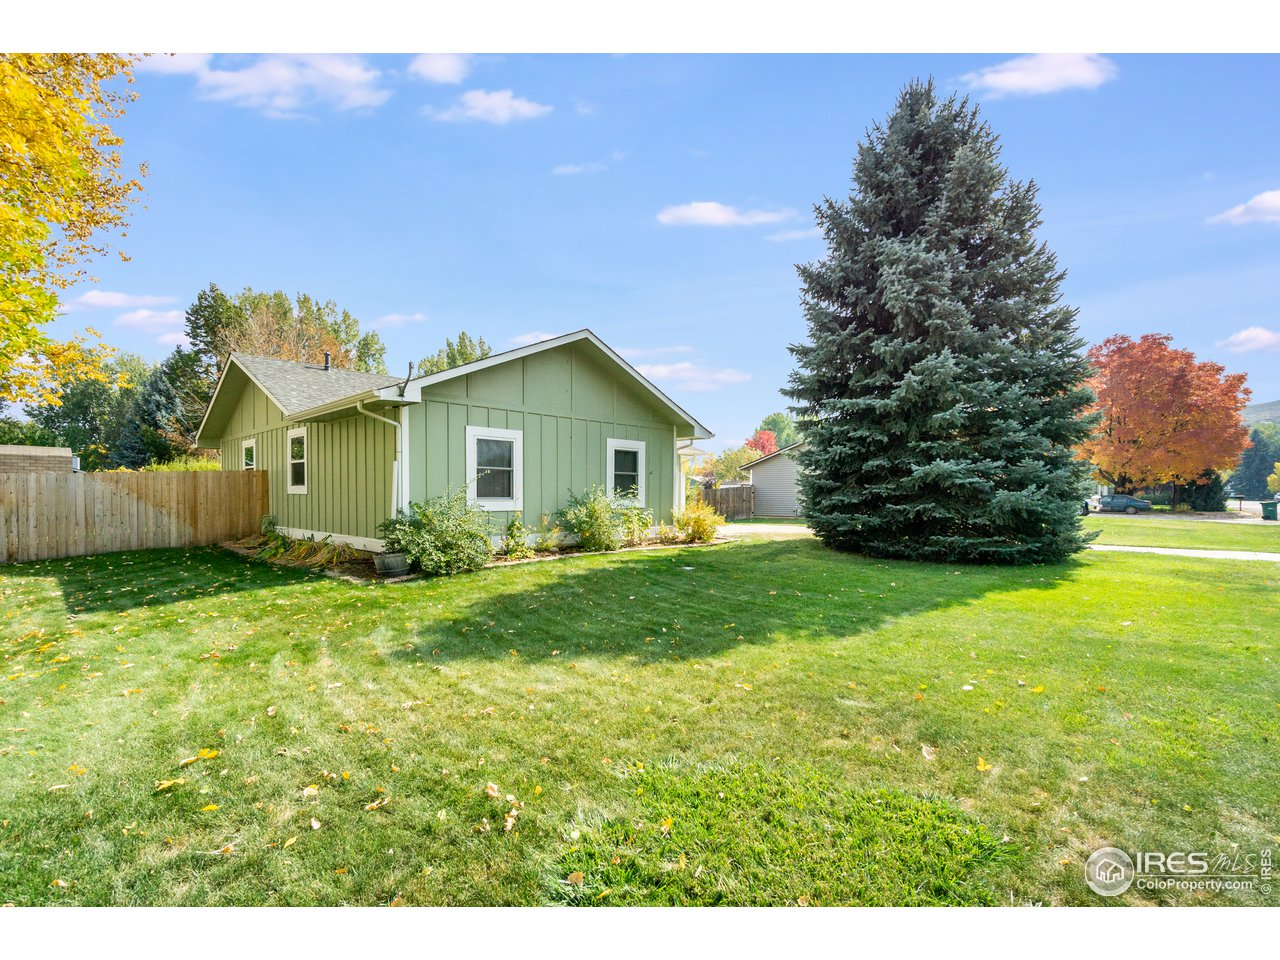 Great front yard with large blue spruce tree